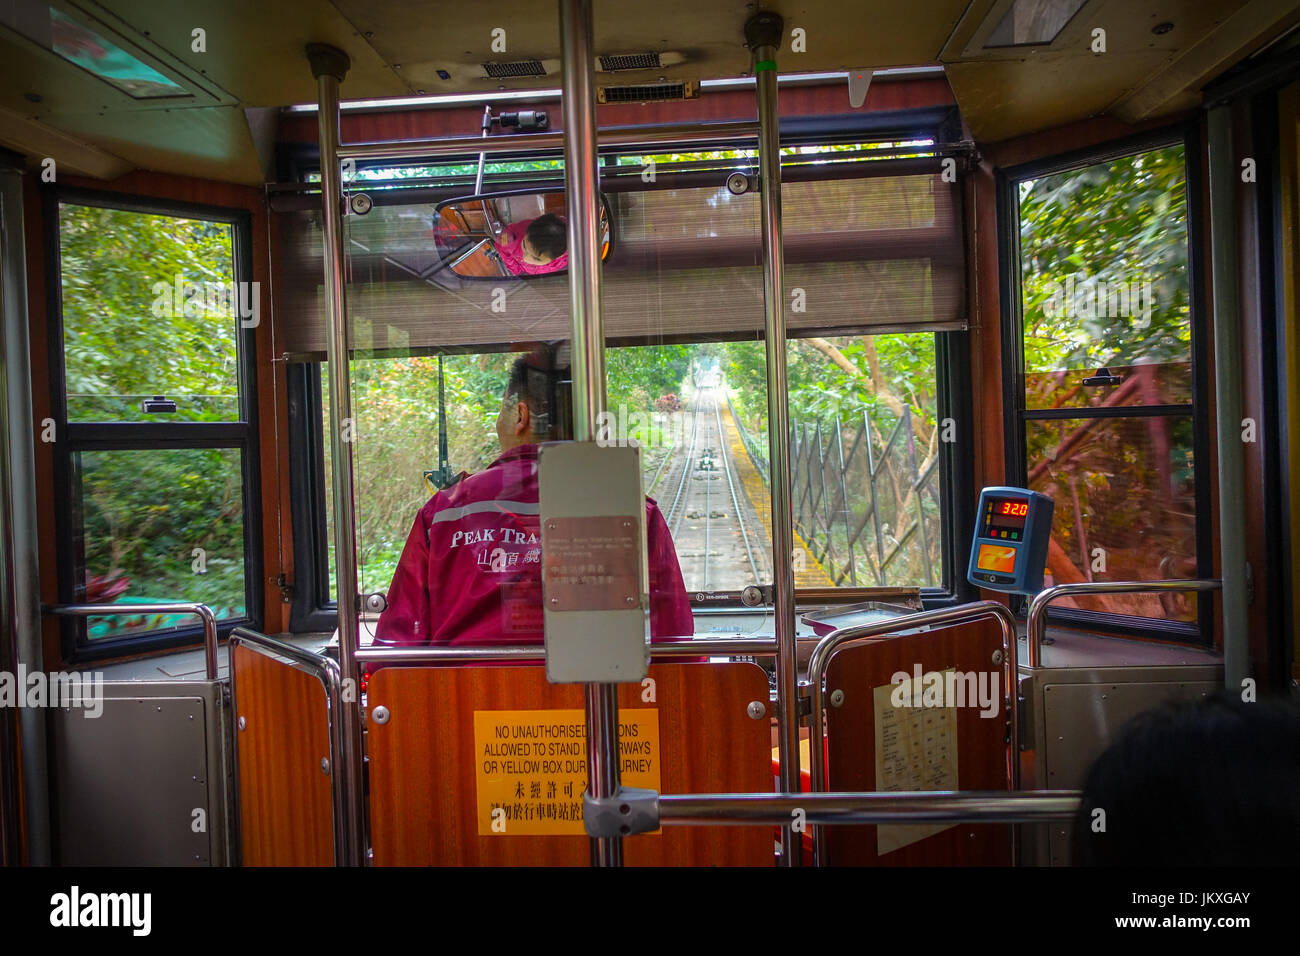 HONG KONG, CHINA - JANUARY 22, 2017: Bus driver inside of a Tram car, drives at Peak Tram, is a funicular railway - Stock Image